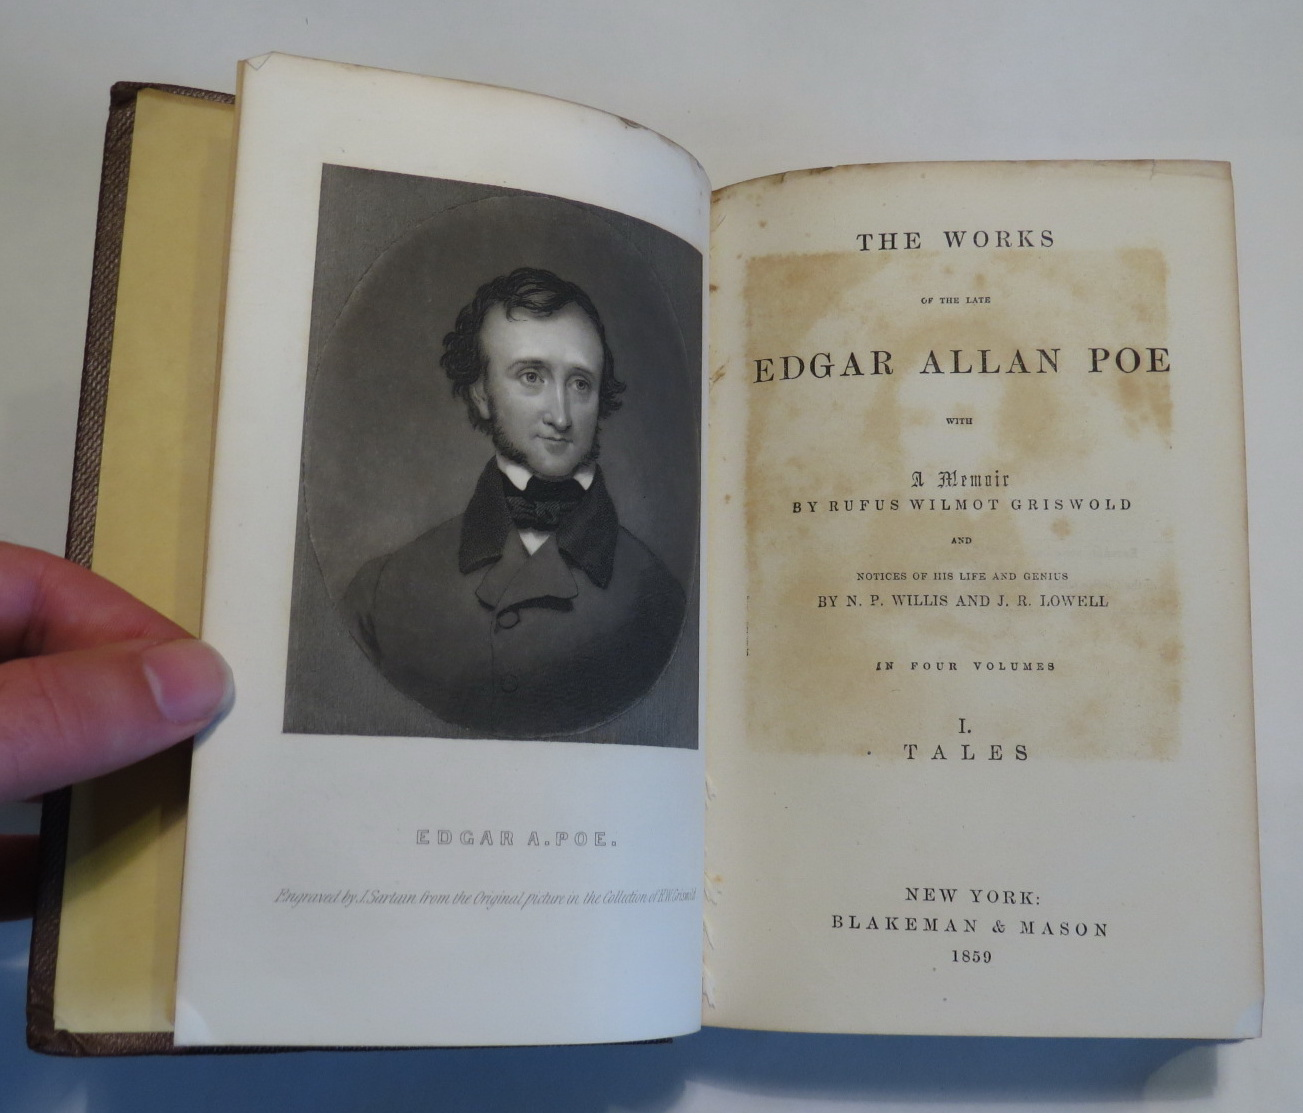 Image for The Works of the Late Edgar Allan Poe with A Memoir by Rufus Wilmot Griswold and Notices of his Life and Genius by N. P. Willis and J. R. Lowell - In Four Volumes